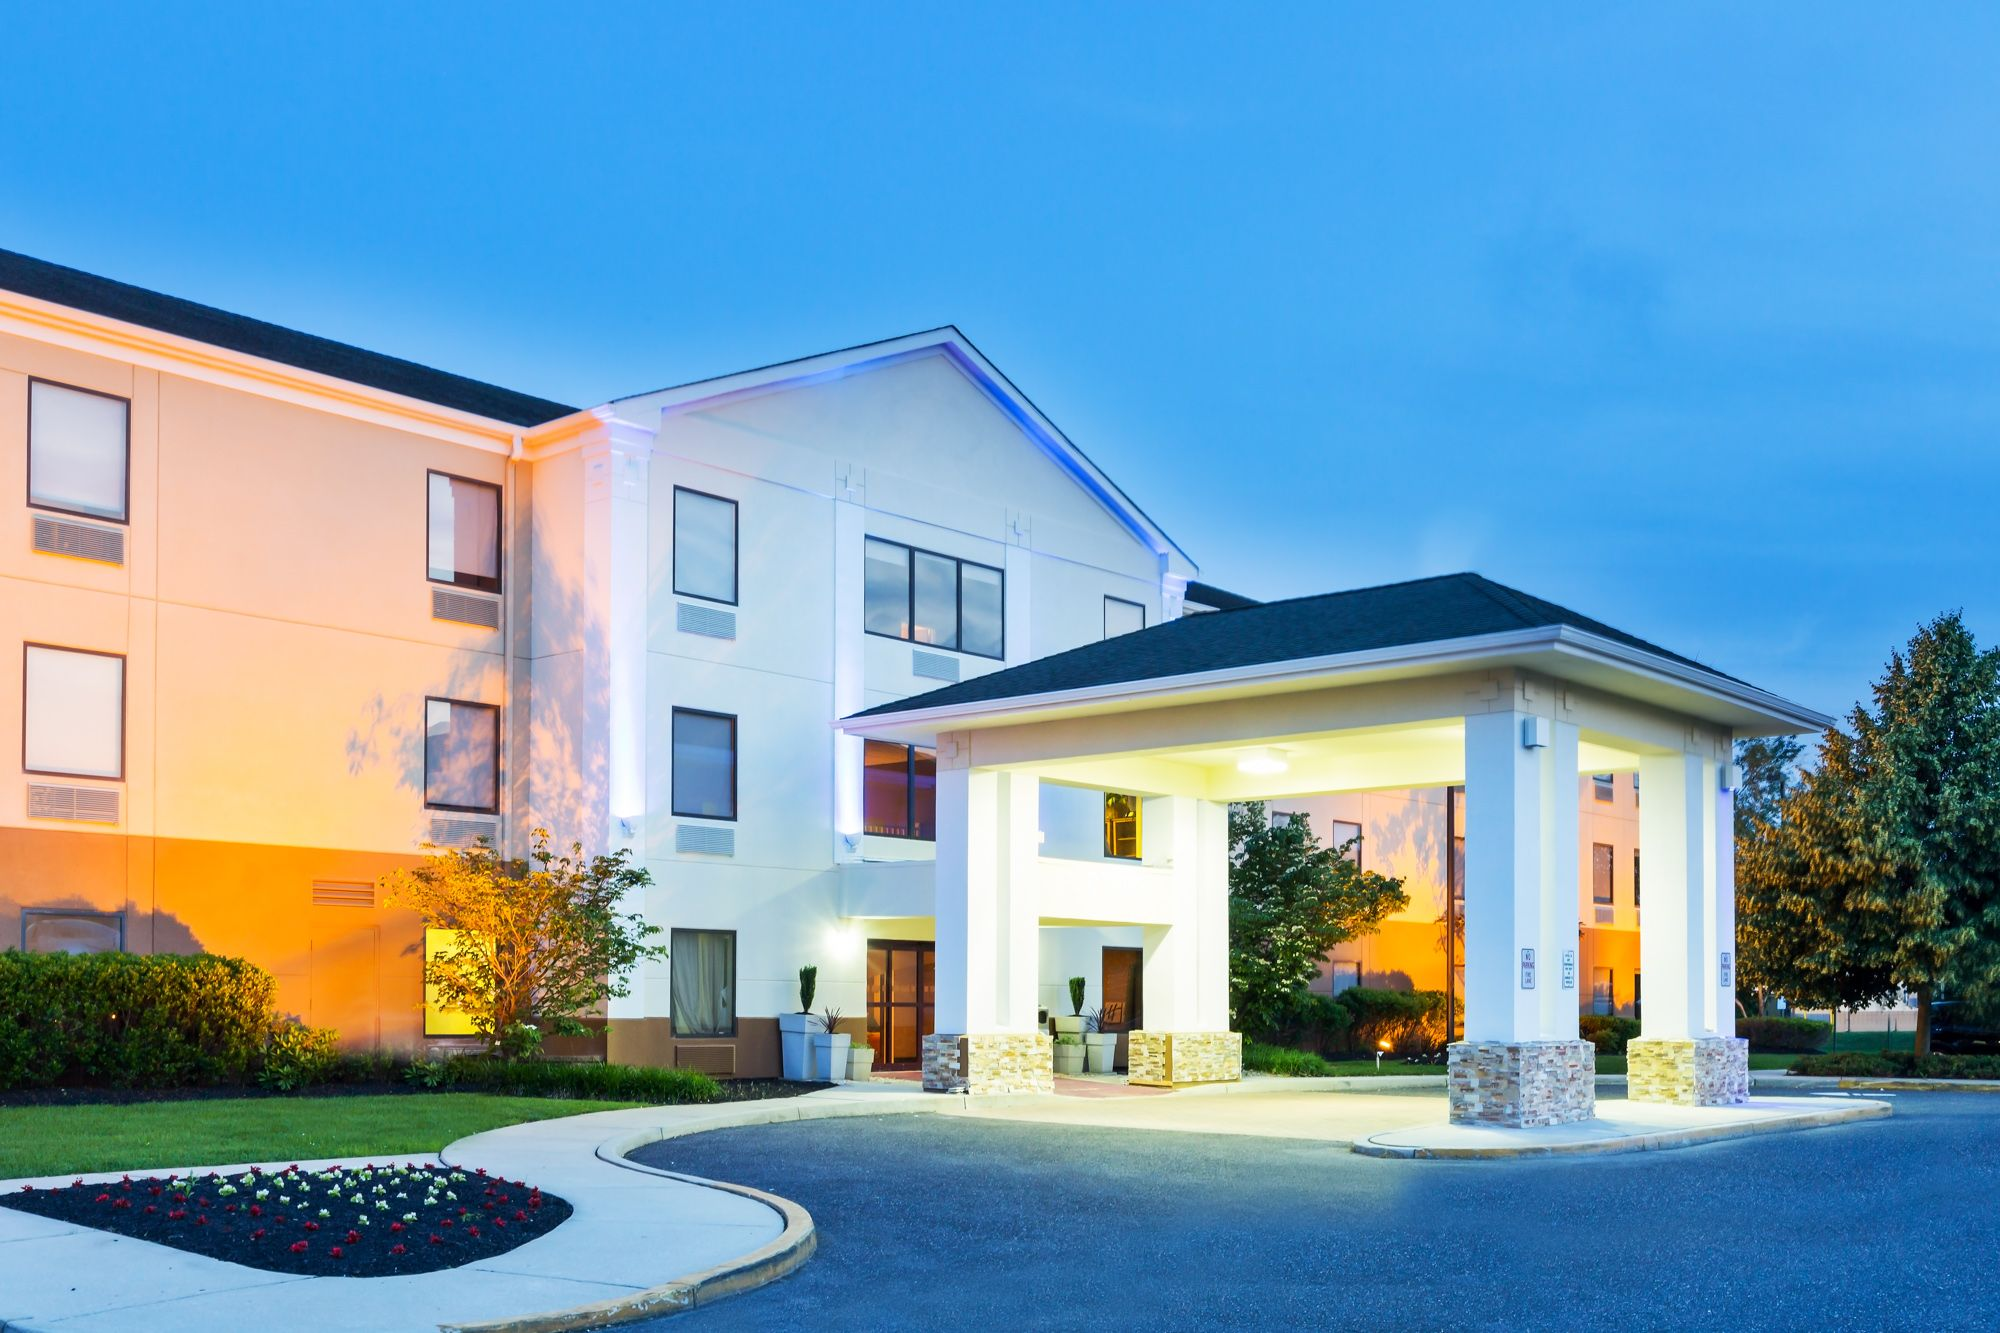 It S A Beautiful Night At The Holiday Inn Express Suites Mt Holly Nj Tnpk Exit 5 Holiday Inn Burlington Shopping House Styles